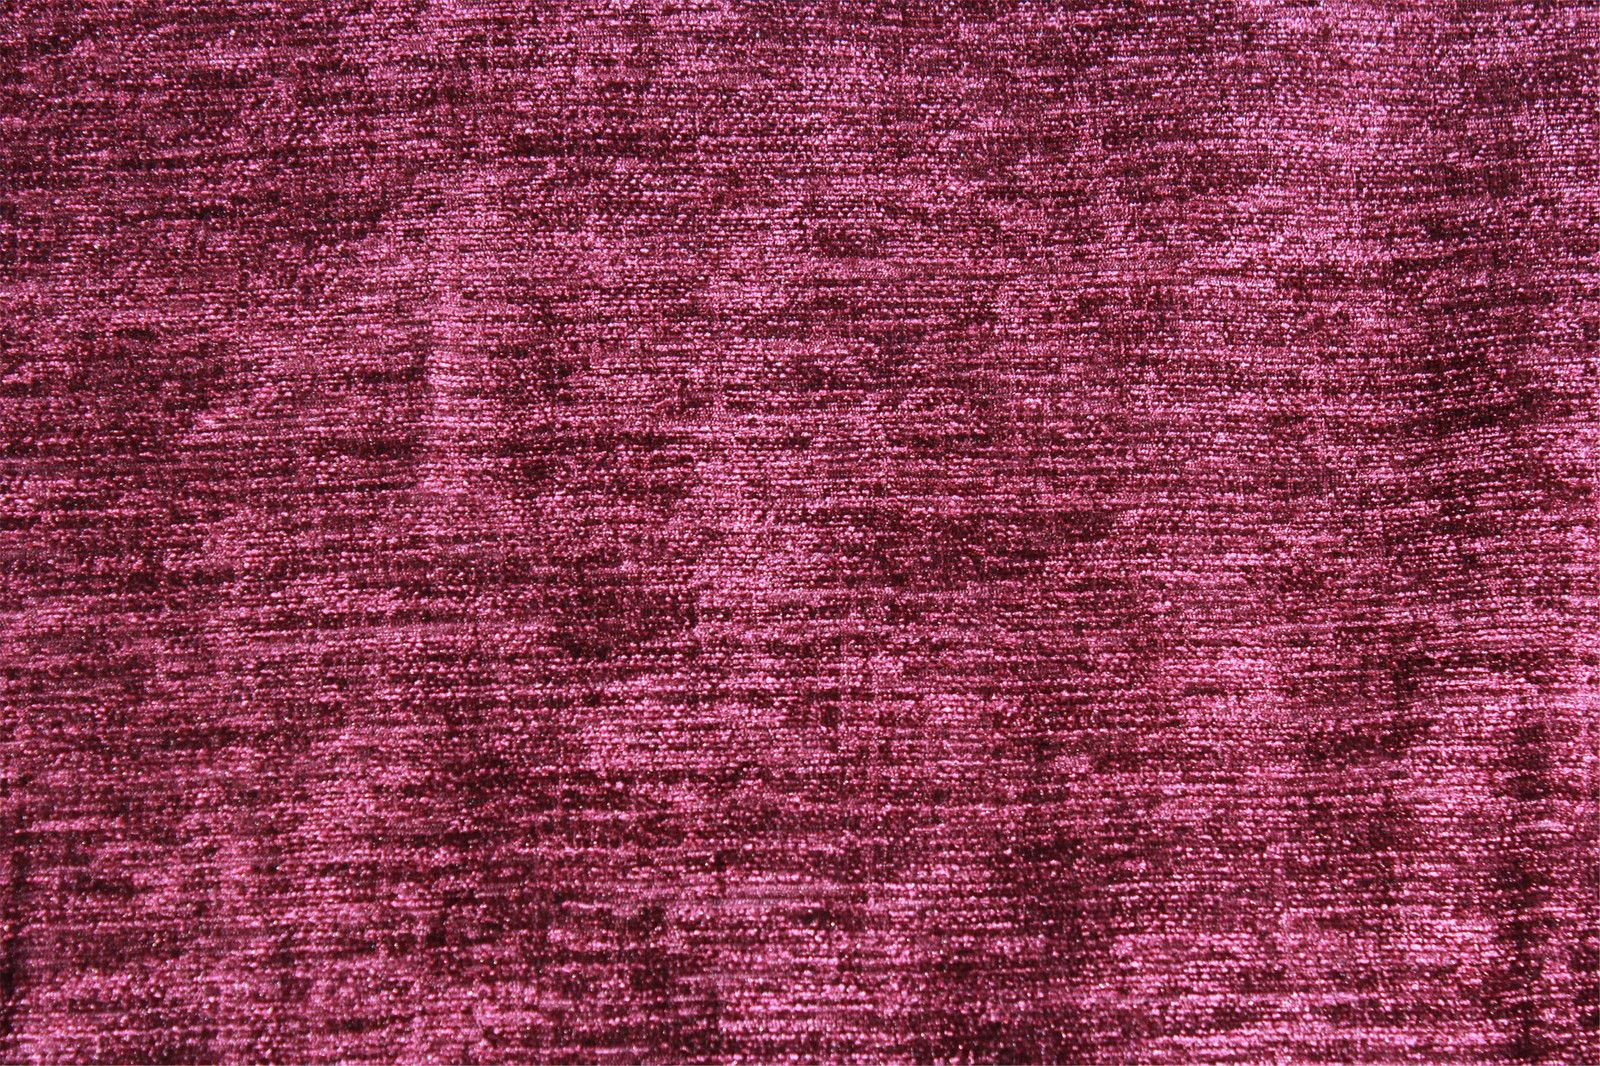 DESIGNER LUXURY THICK HEAVY WEIGHT CURTAIN OR UPHOLSTERY CHENILLE VELVET FABRIC